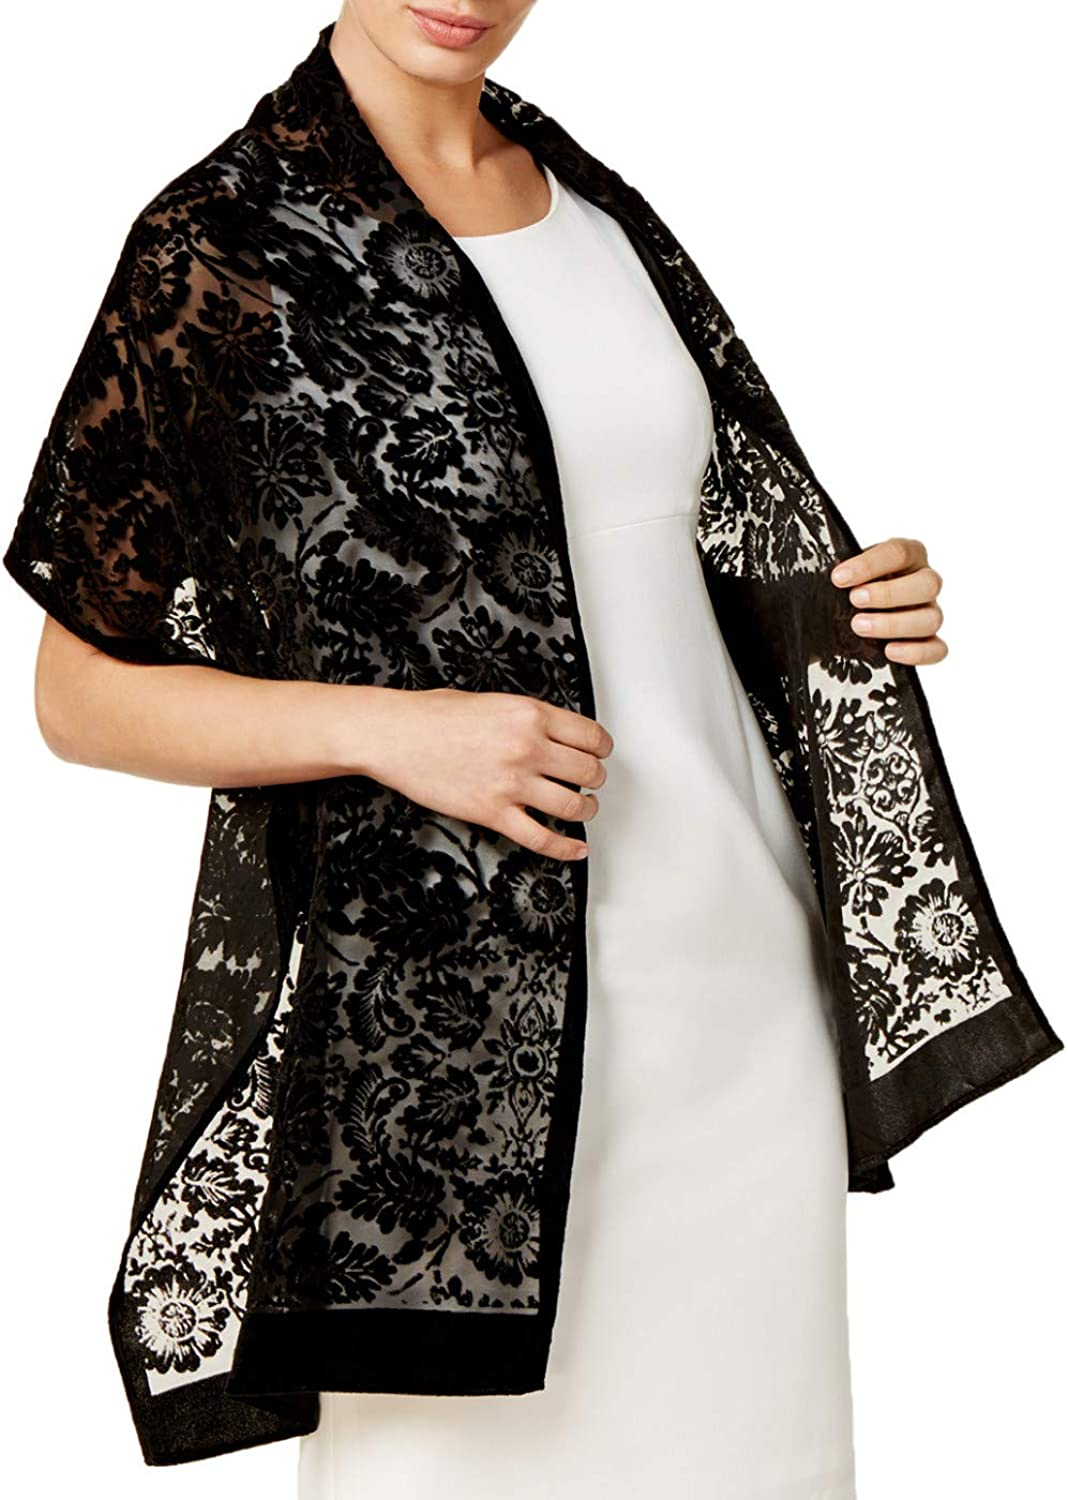 INC International Concepts Women's Black Floral Medallion Wrap Scarf